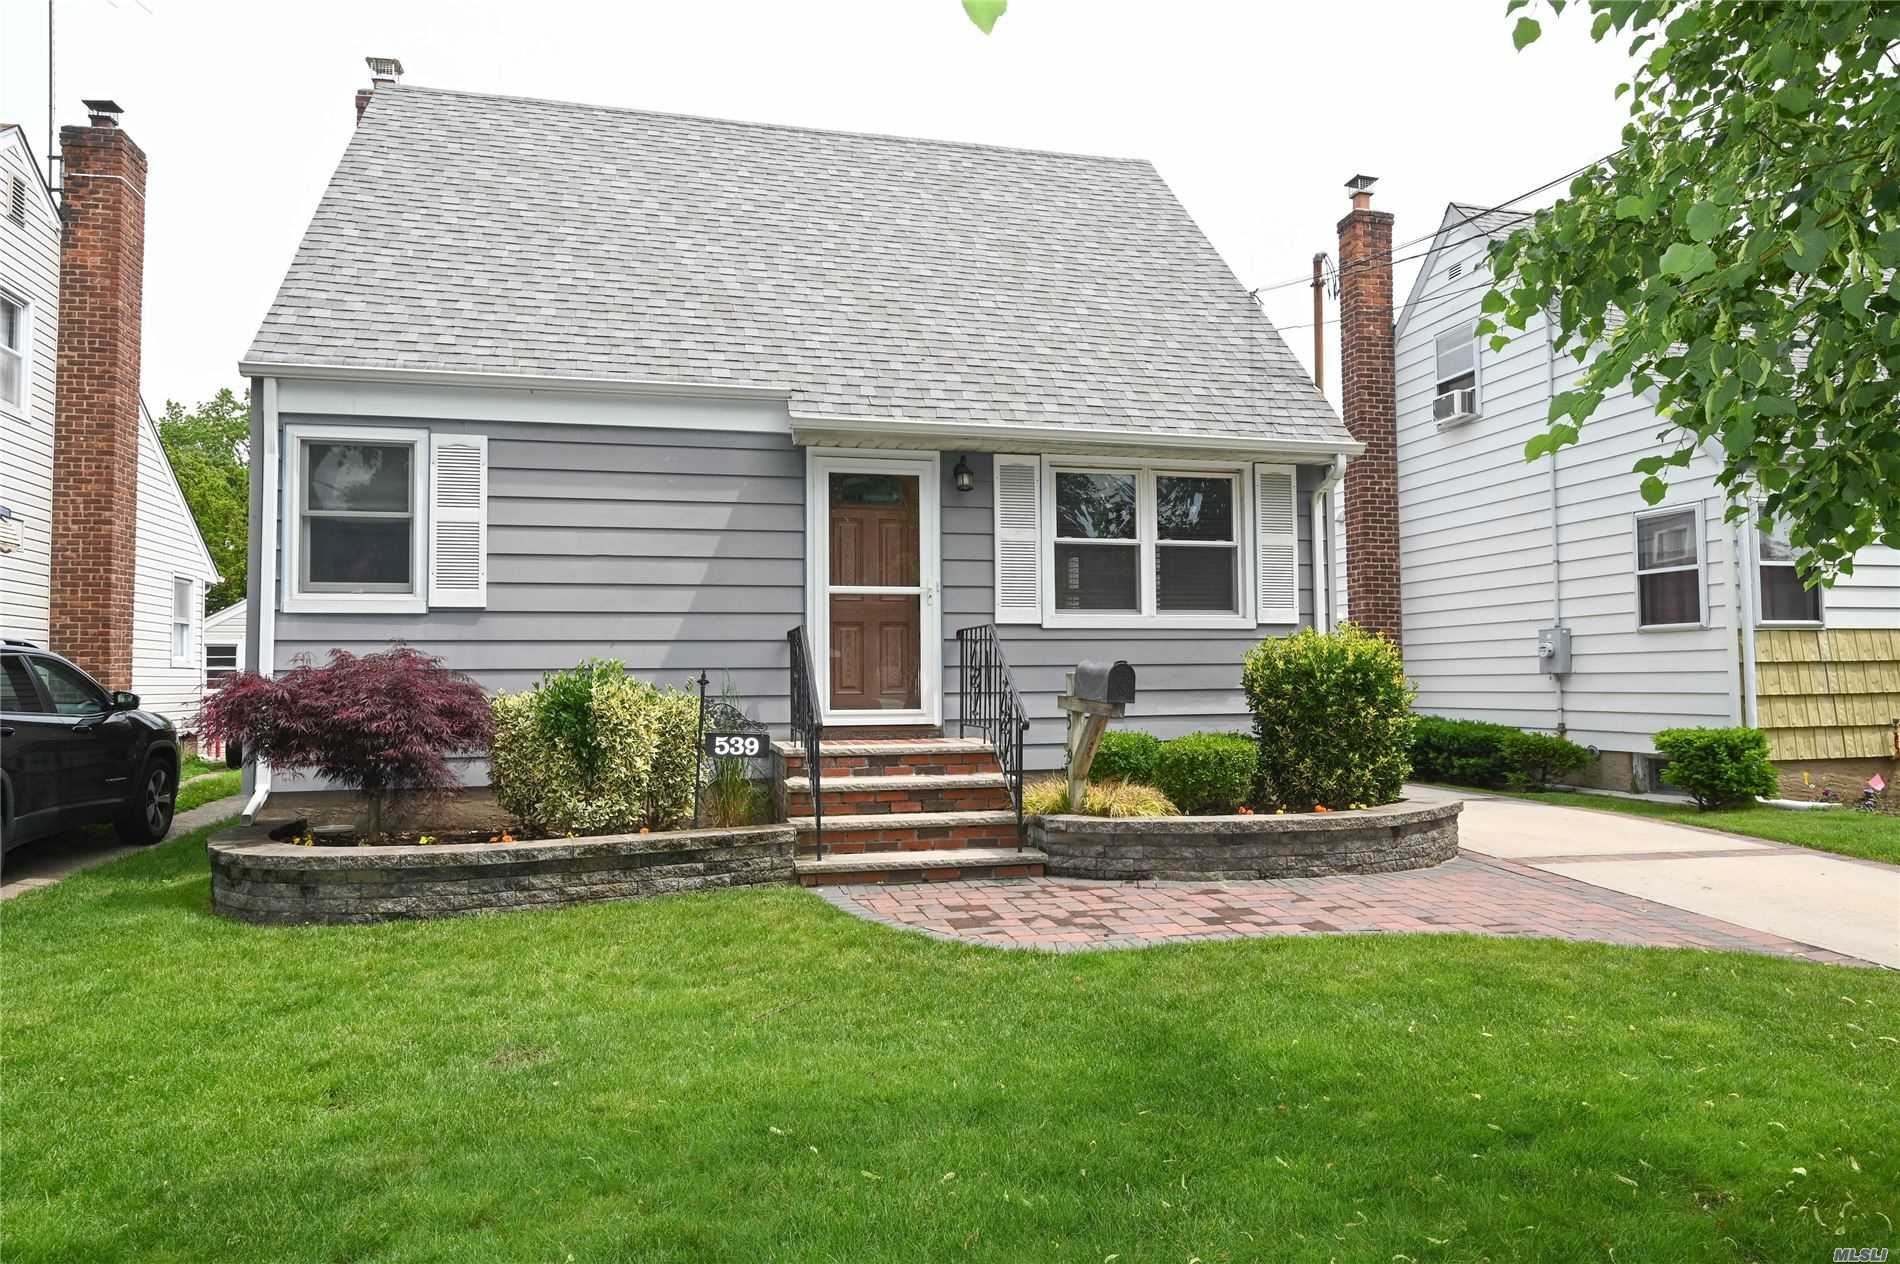 539 11th Ave, New Hyde Park, NY 11040 - MLS#: 3221516